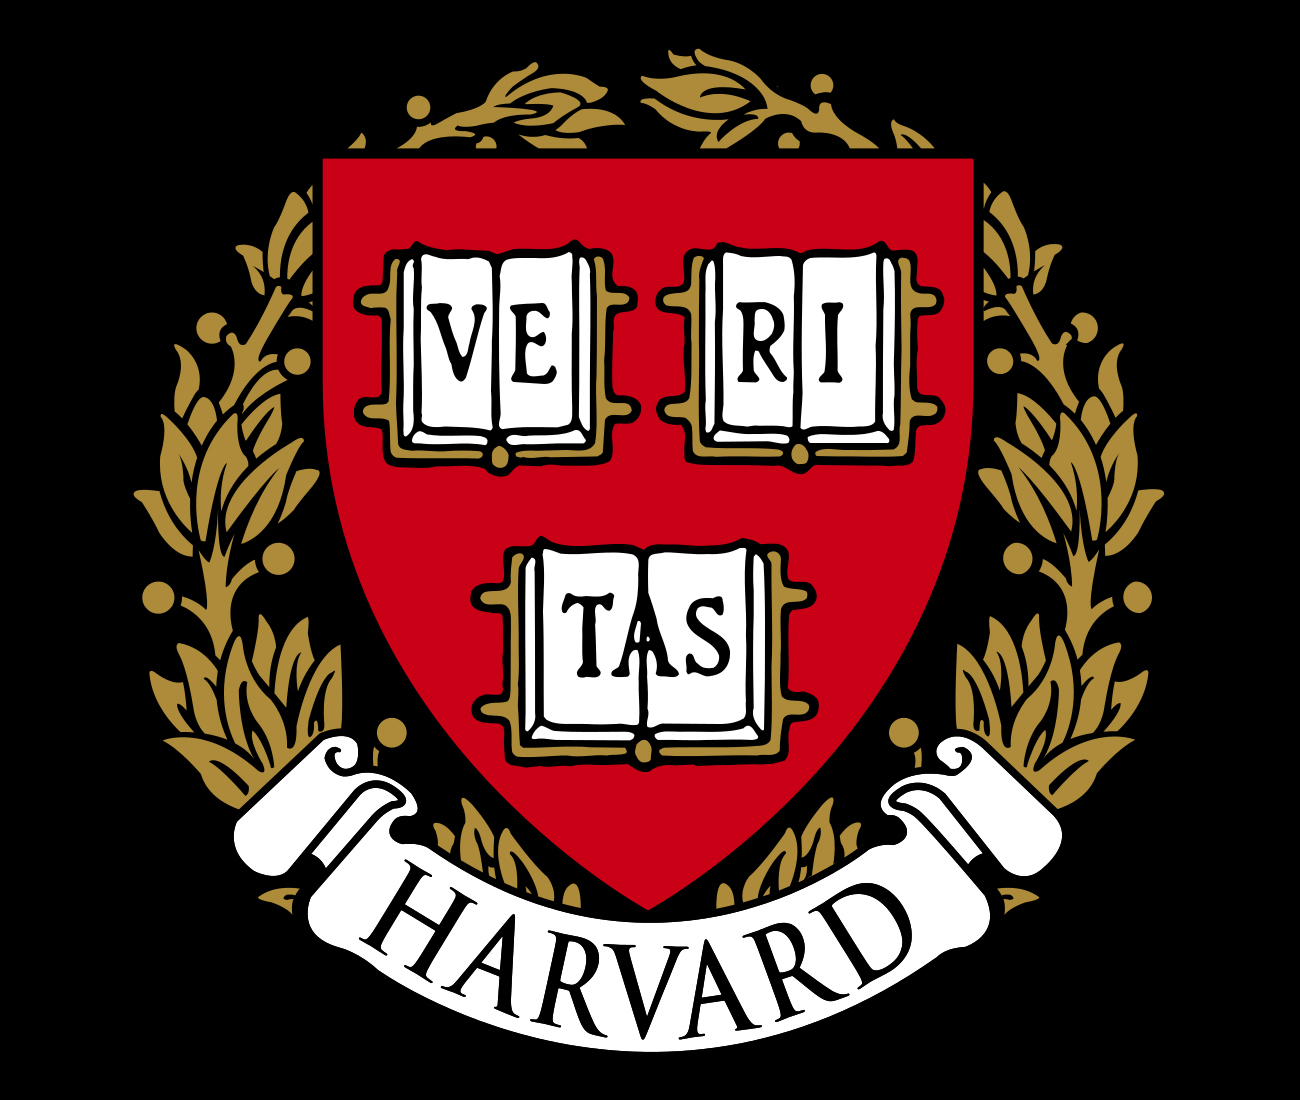 Harvard Logo - Harvard Logo, Harvard Symbol Meaning, History and Evolution